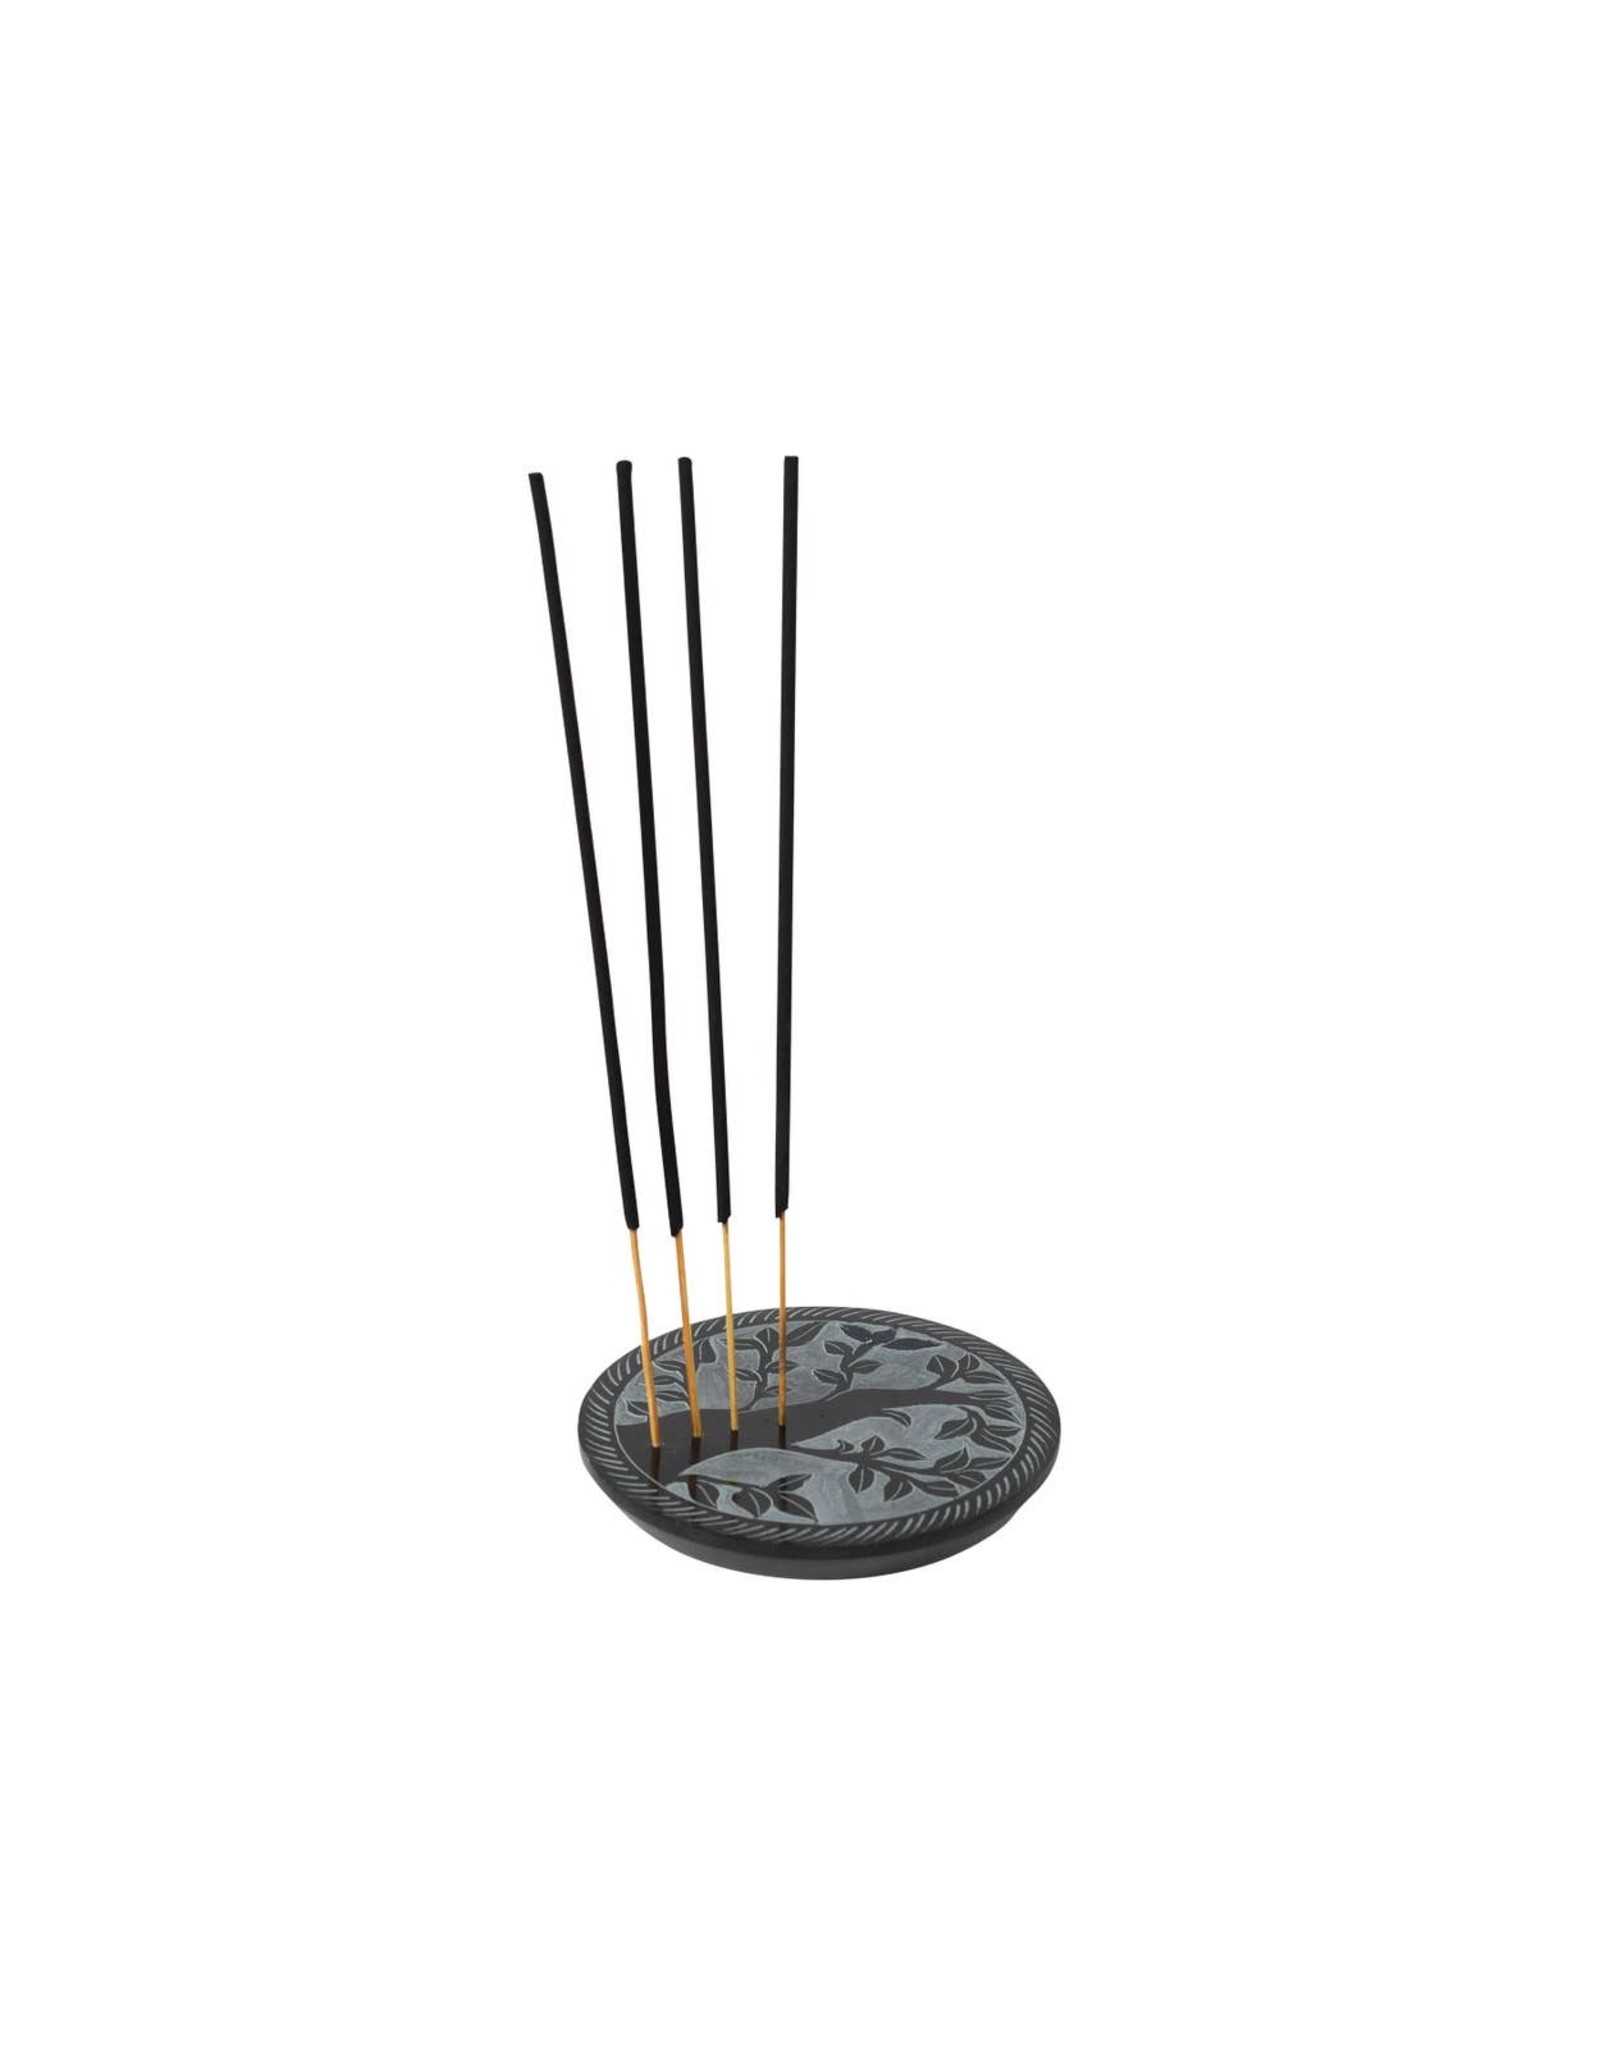 Tree of Life Incense Holder, India